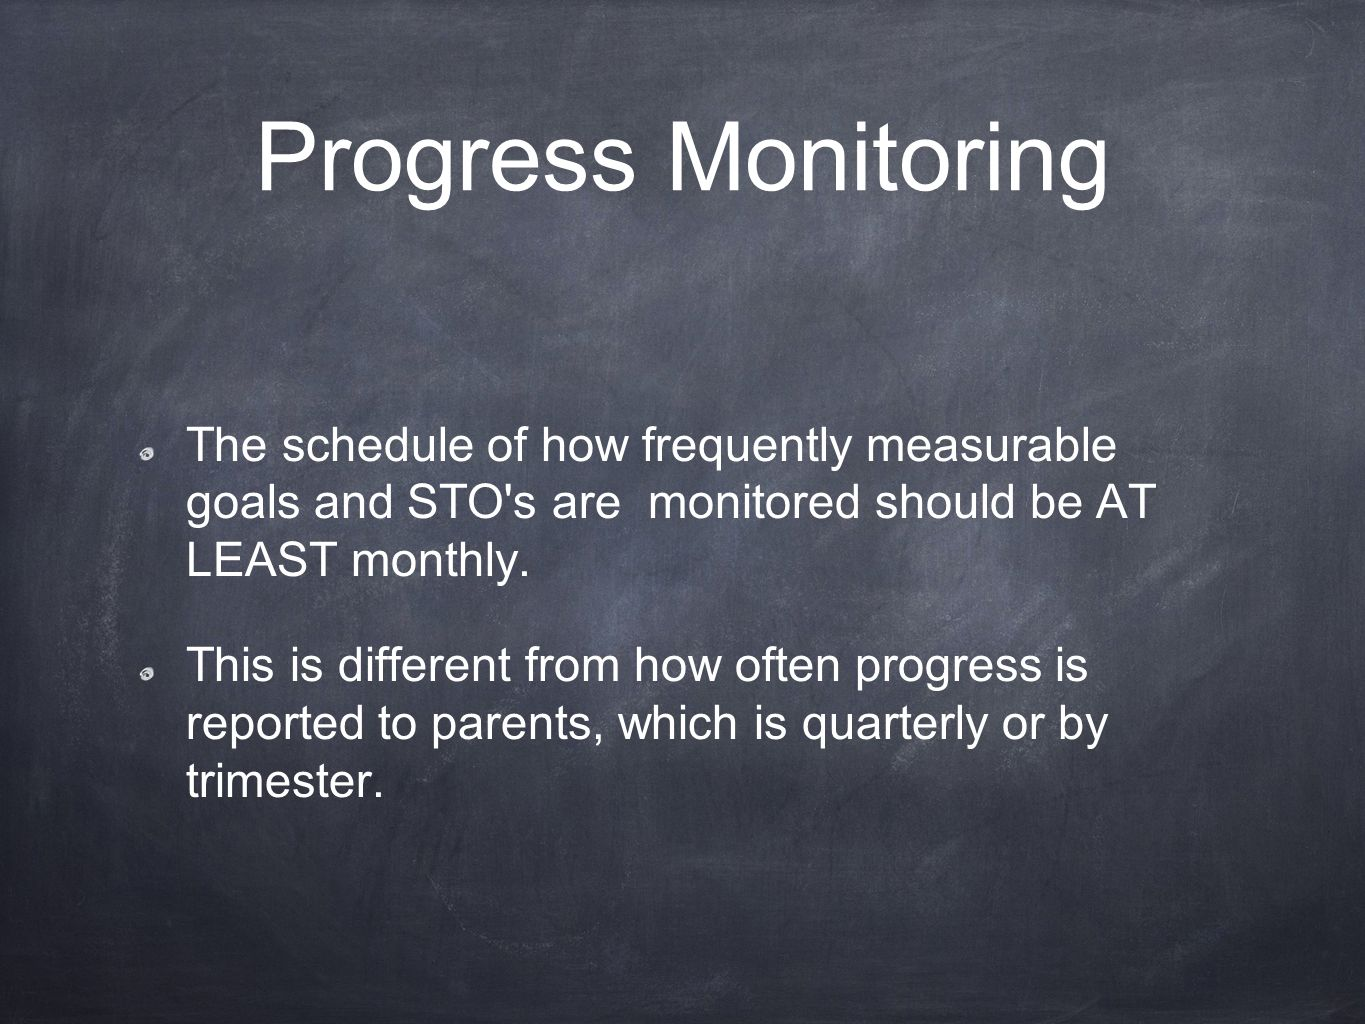 Progress Monitoring The schedule of how frequently measurable goals and STO s are monitored should be AT LEAST monthly.